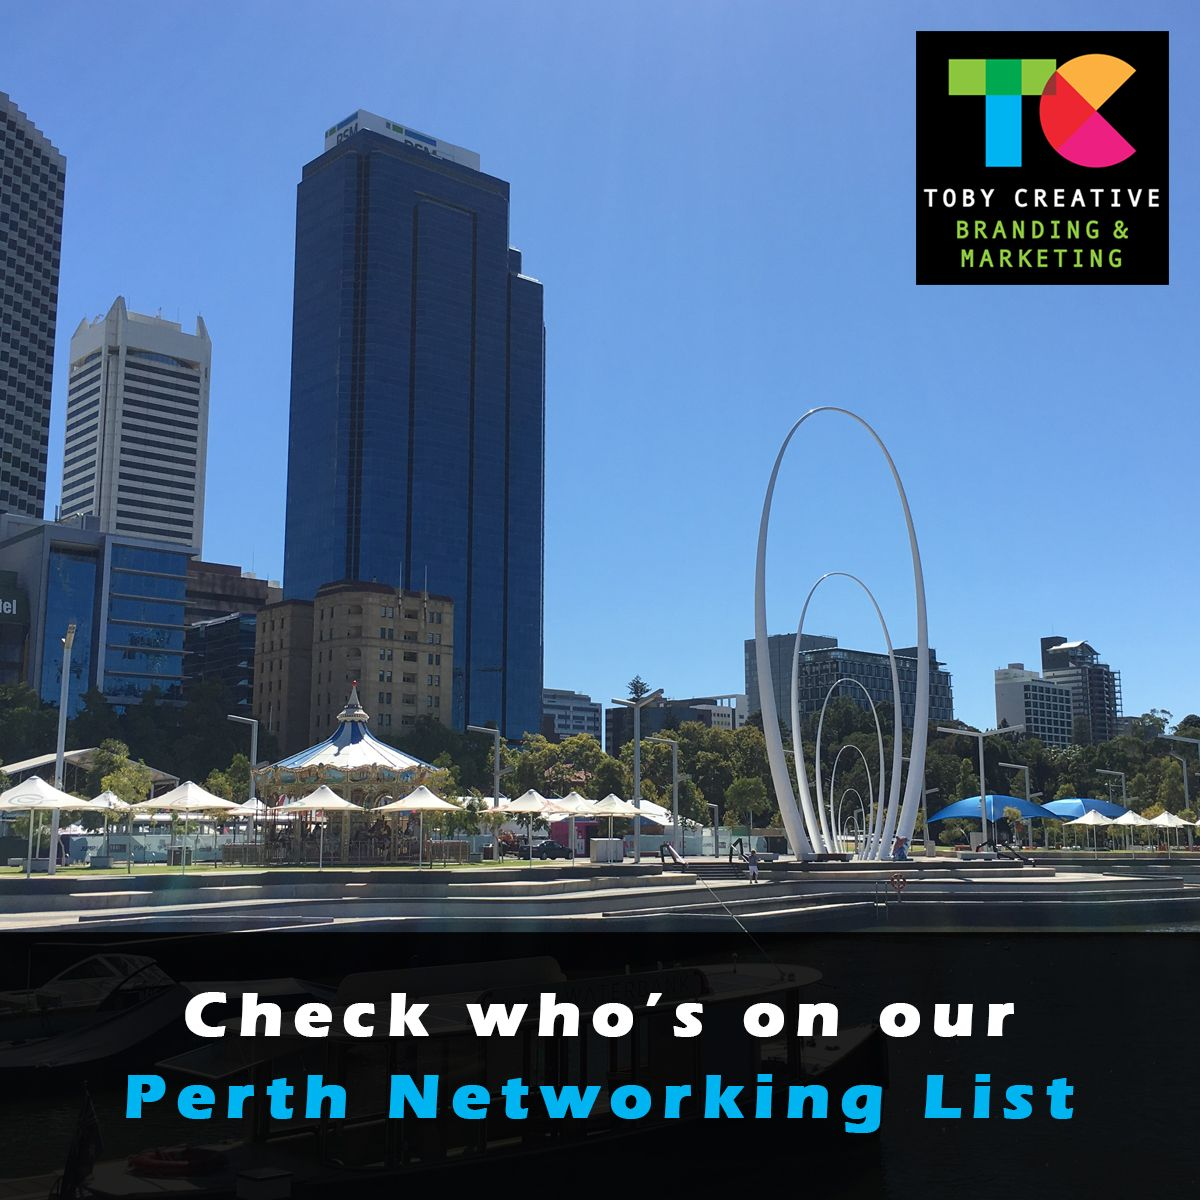 Check who's on our Perth Networking List Join other Perth Business owners, managers and BDMs at local Perth Networking Groups & Networking Organisations operating in Perth, Western Australia. Find all the contact details for Perth network groups near you that will help your business grow: https://tobycreative.com.au/perth-business-networking-groups/ #tobycreative #branding #marketing #seo #networking #businessnetworks #perthnetworking #businesssupport #businessgrowth